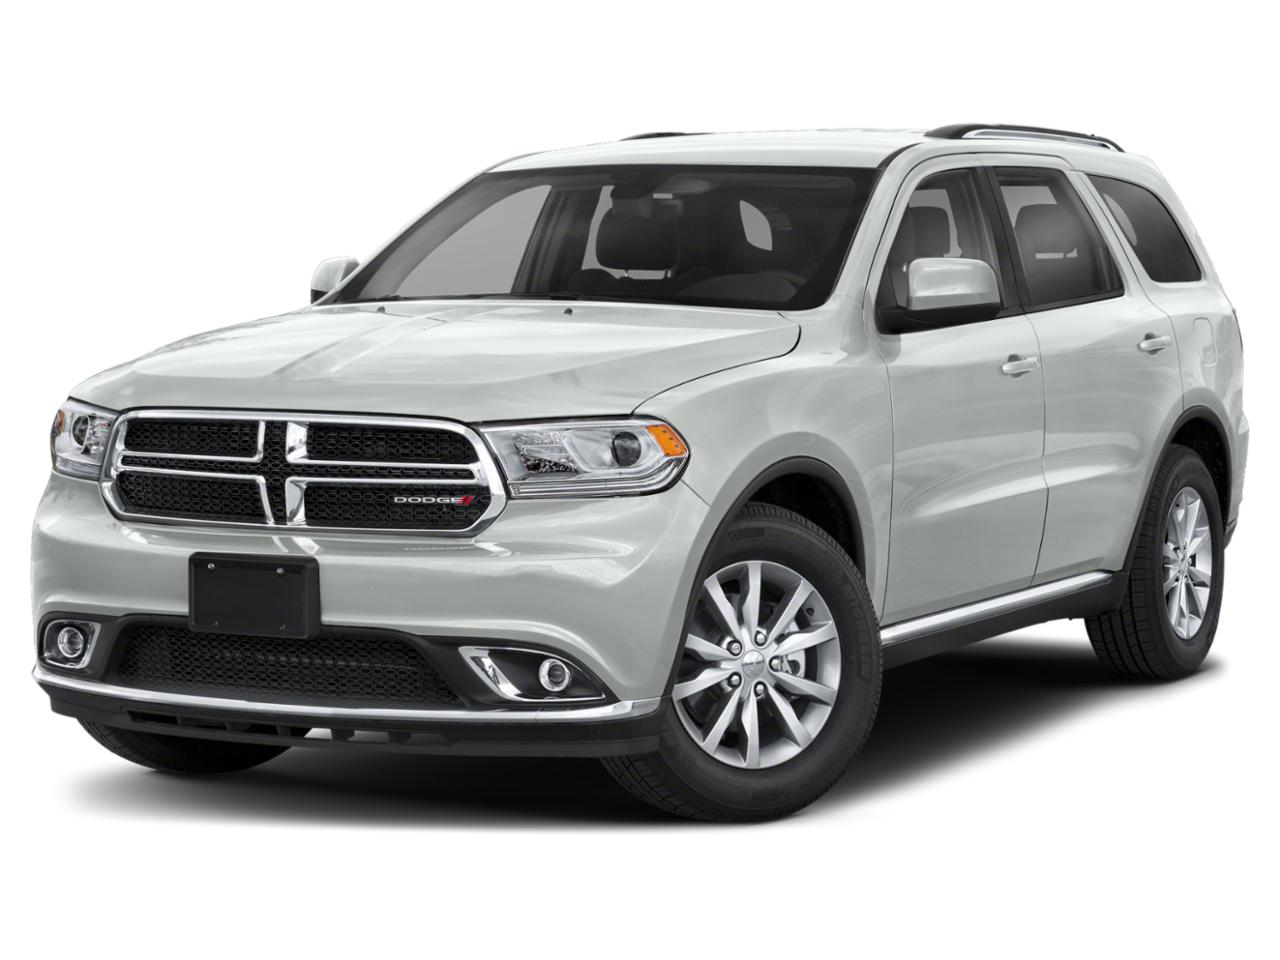 2018 Dodge Durango Vehicle Photo in Trevose, PA 19053